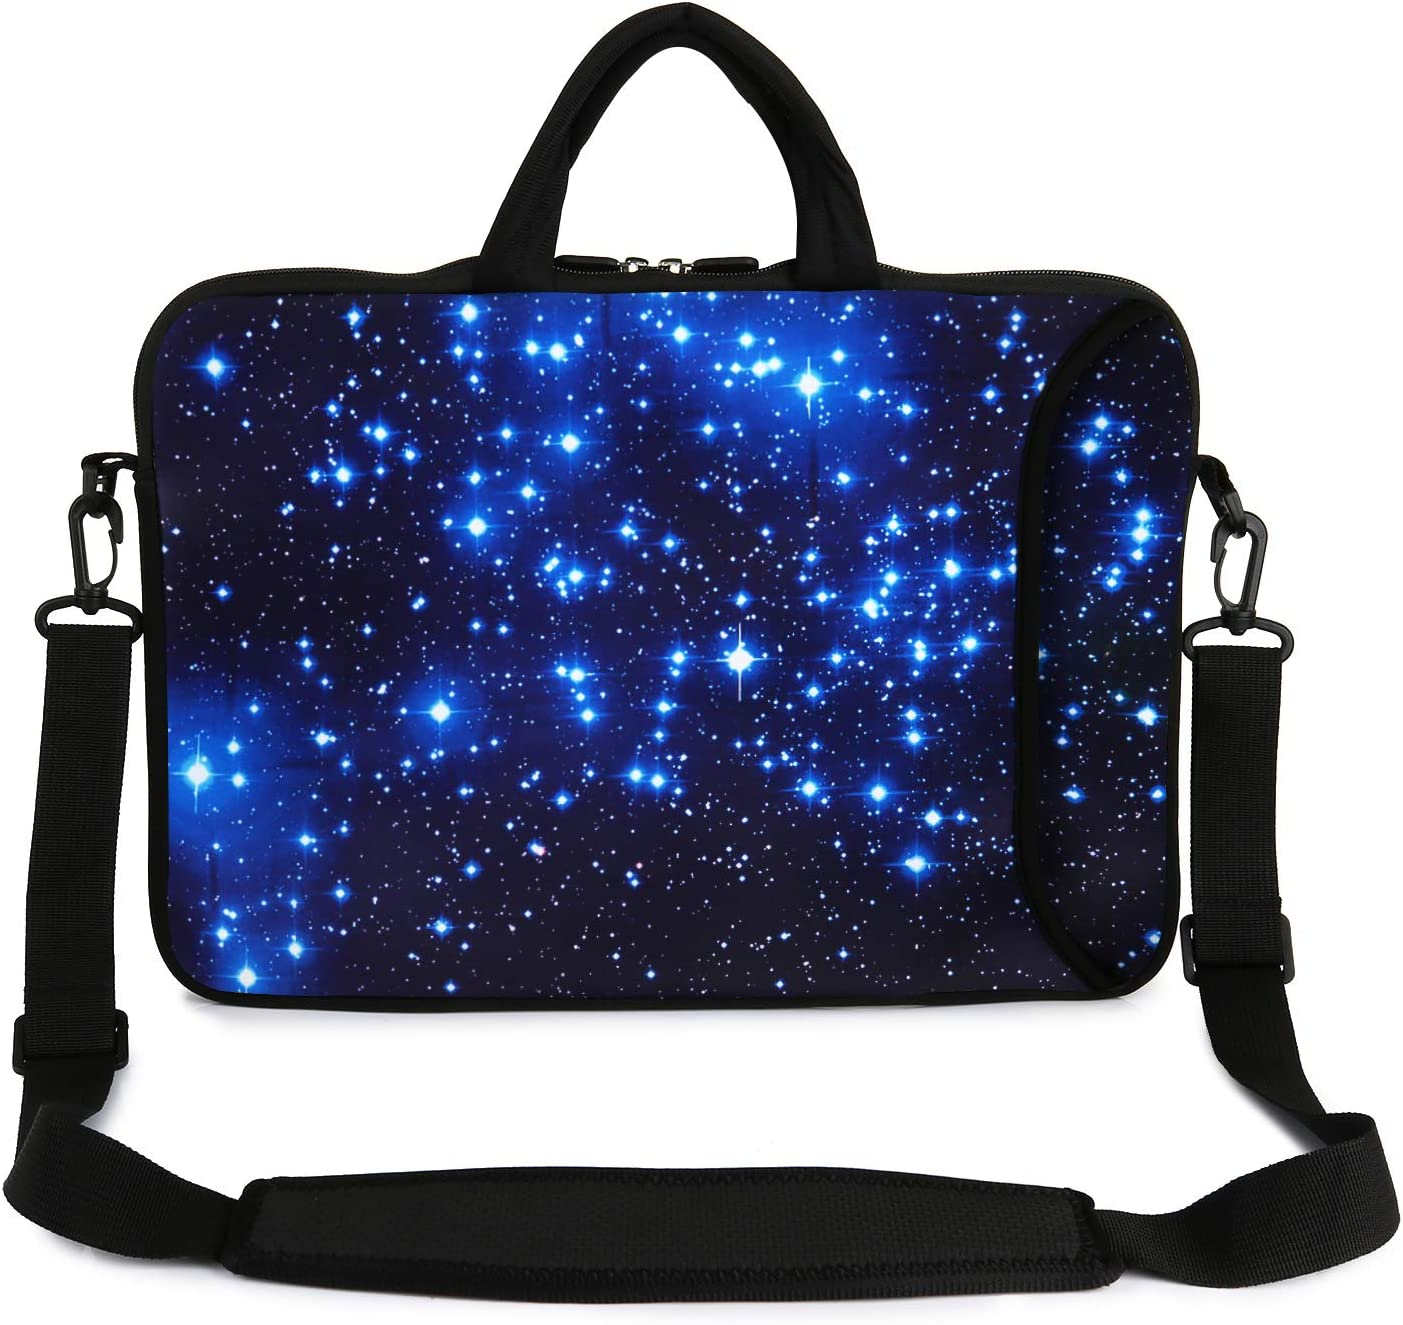 "Violet Mist 13"" 15"" 15.6"" Neoprene Laptop Sleeve Bag Waterproof Sleeve Case Adjustable Shoulder Strap External Pocket(11"" 12"" 13""-13.3"", Blue Star2)"